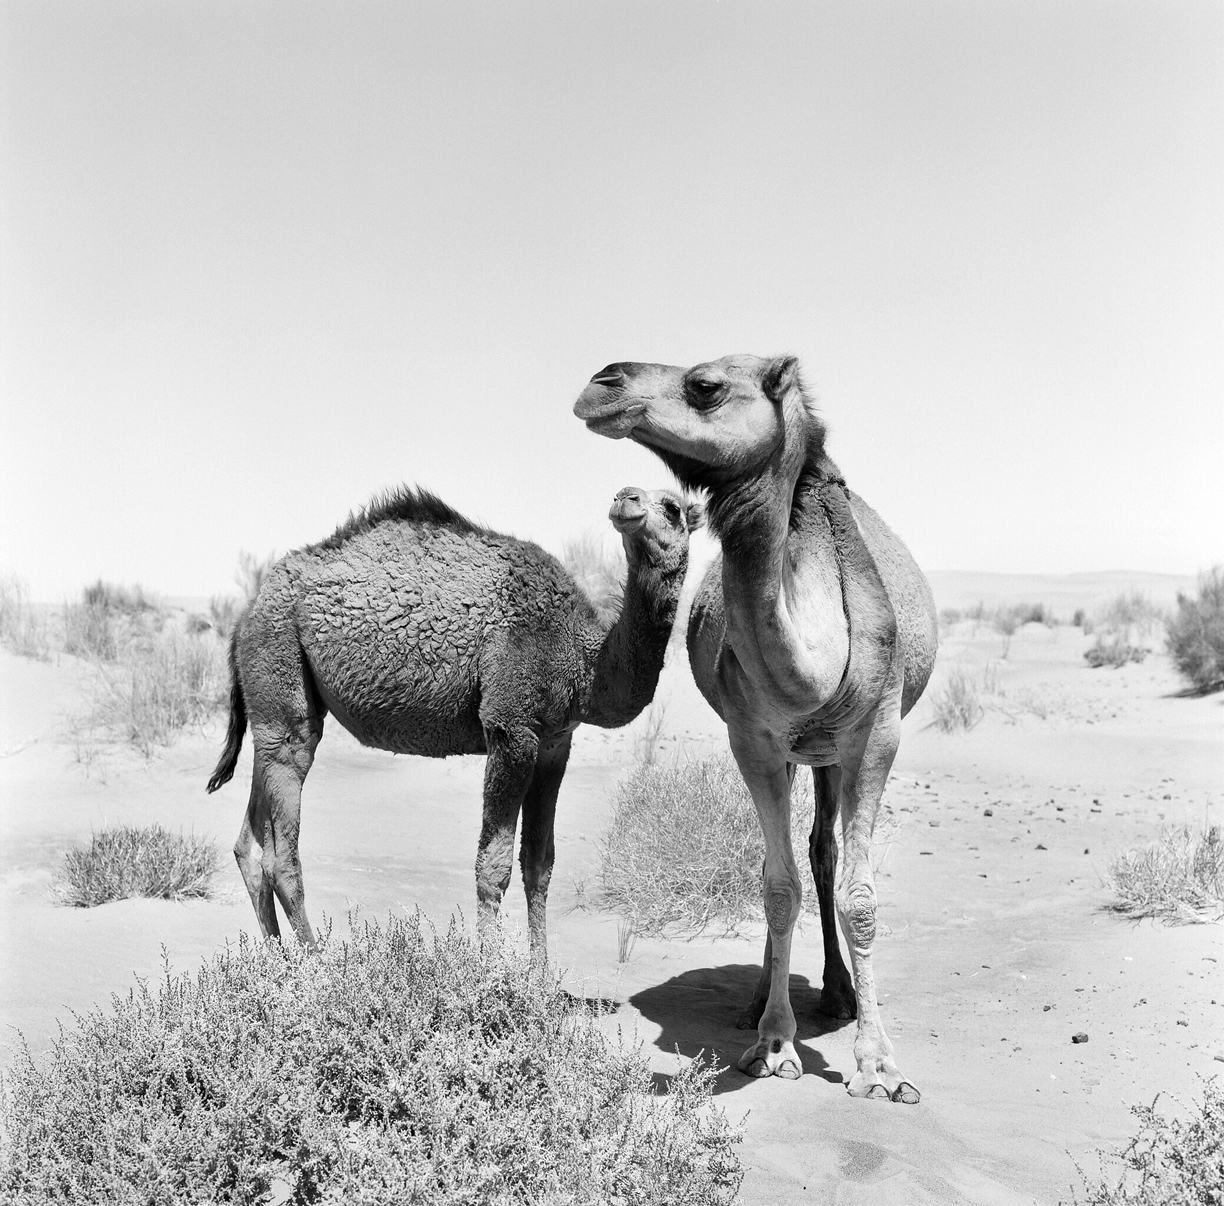 Two Wild Camels in Sahara Desert_web.jpg